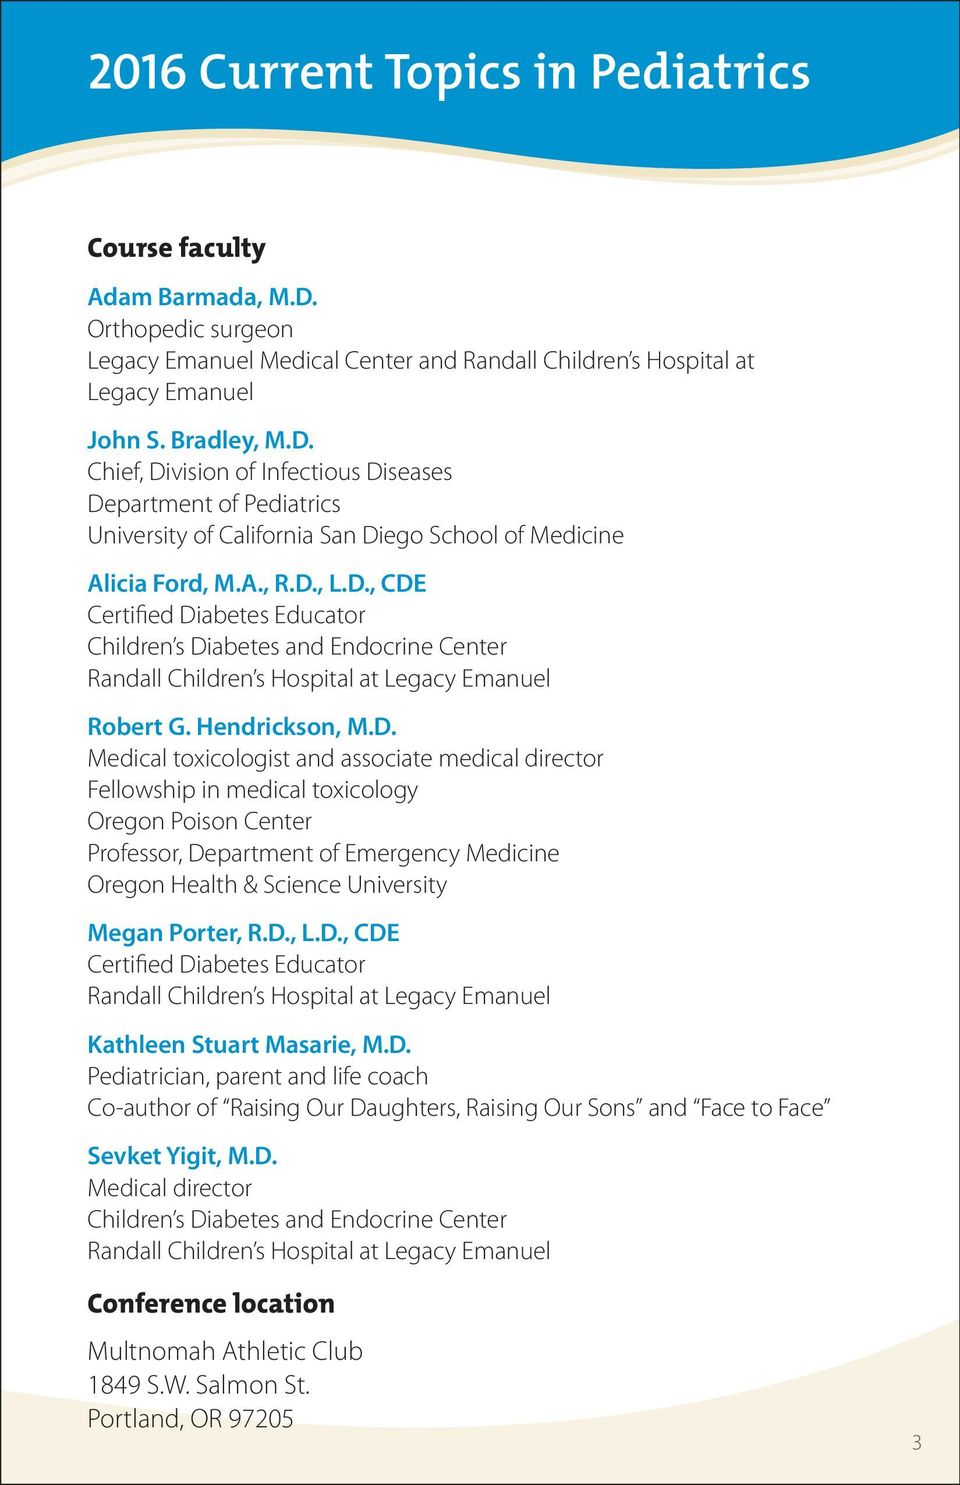 Chief, Division of Infectious Diseases Department of Pediatrics University of California San Diego School of Medicine Alicia Ford, M.A., R.D., L.D., CDE Certified Diabetes Educator Children s Diabetes and Endocrine Center Randall Children s Hospital at Legacy Emanuel Robert G.